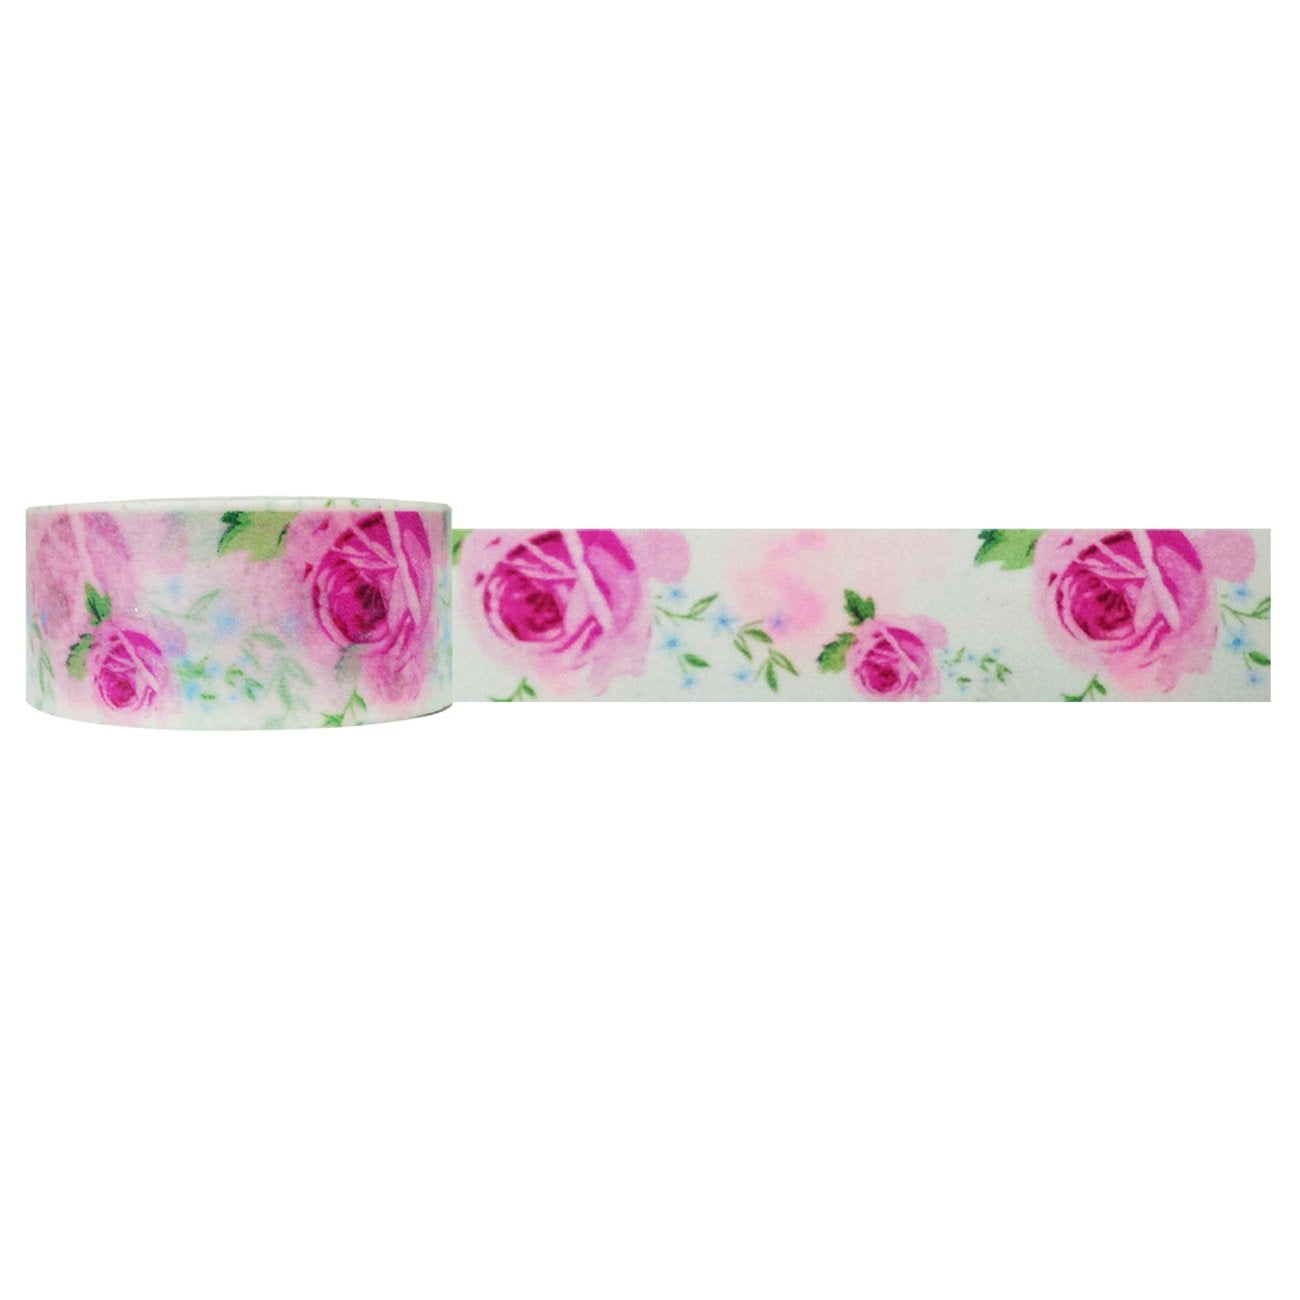 Wrapables Floral & Nature Washi Masking Tape, Sweet Rose